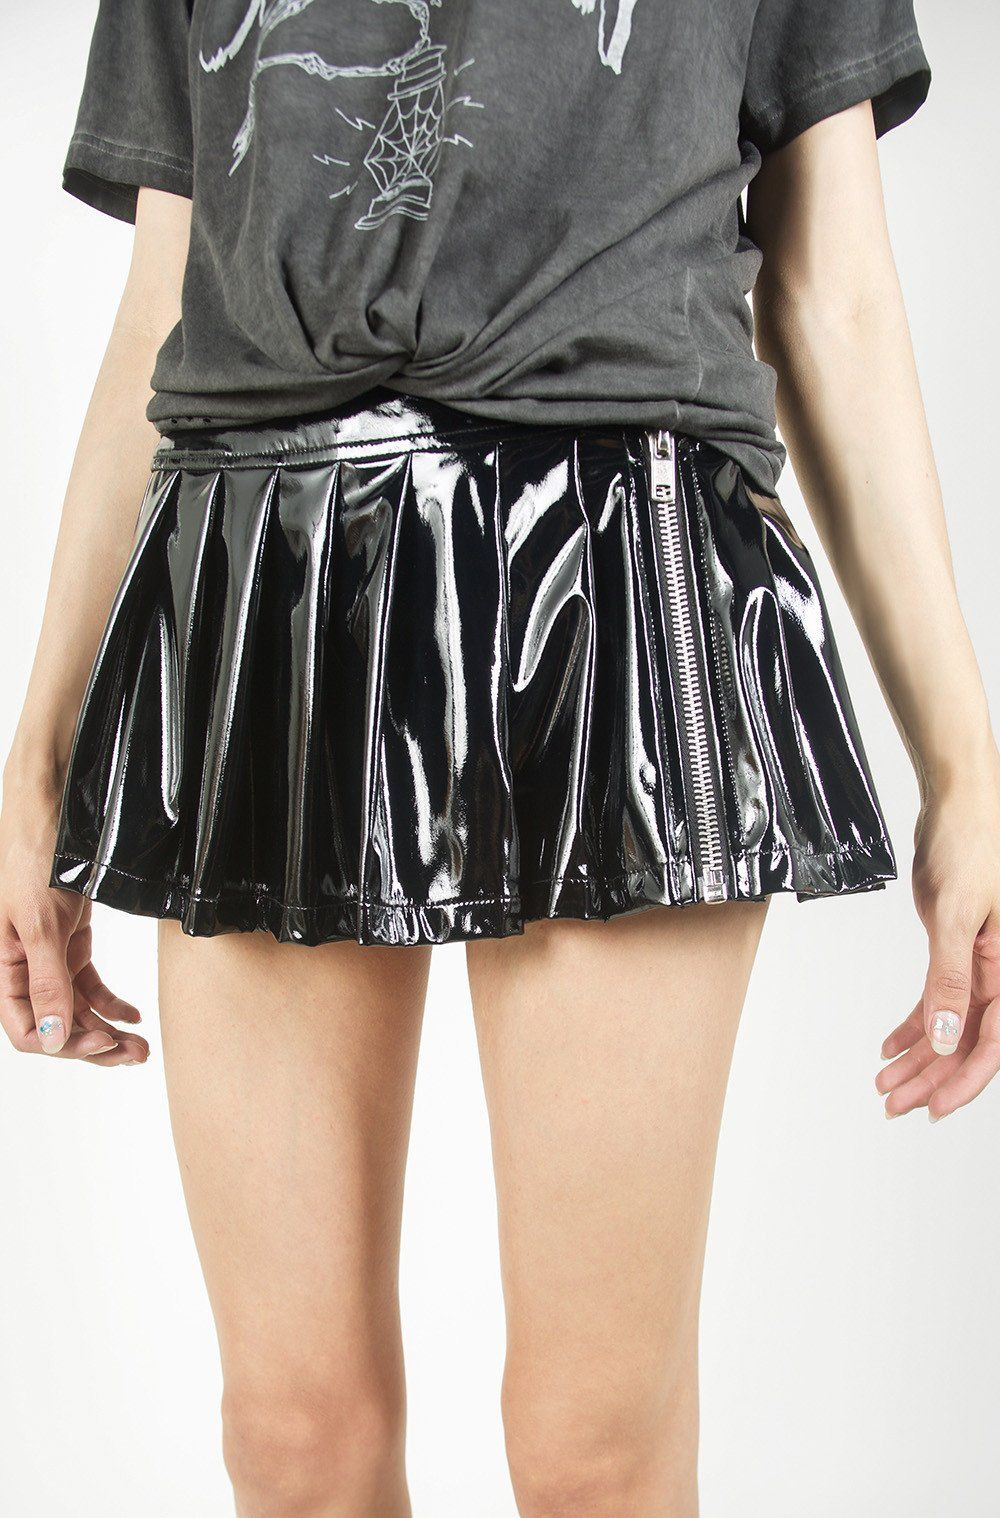 a4a0e71059 No clothing collection is complete without a Vinyl Classic Pleated Skirt.  Nothing sets off a look more than vinyl. A true classic. Get yours today.